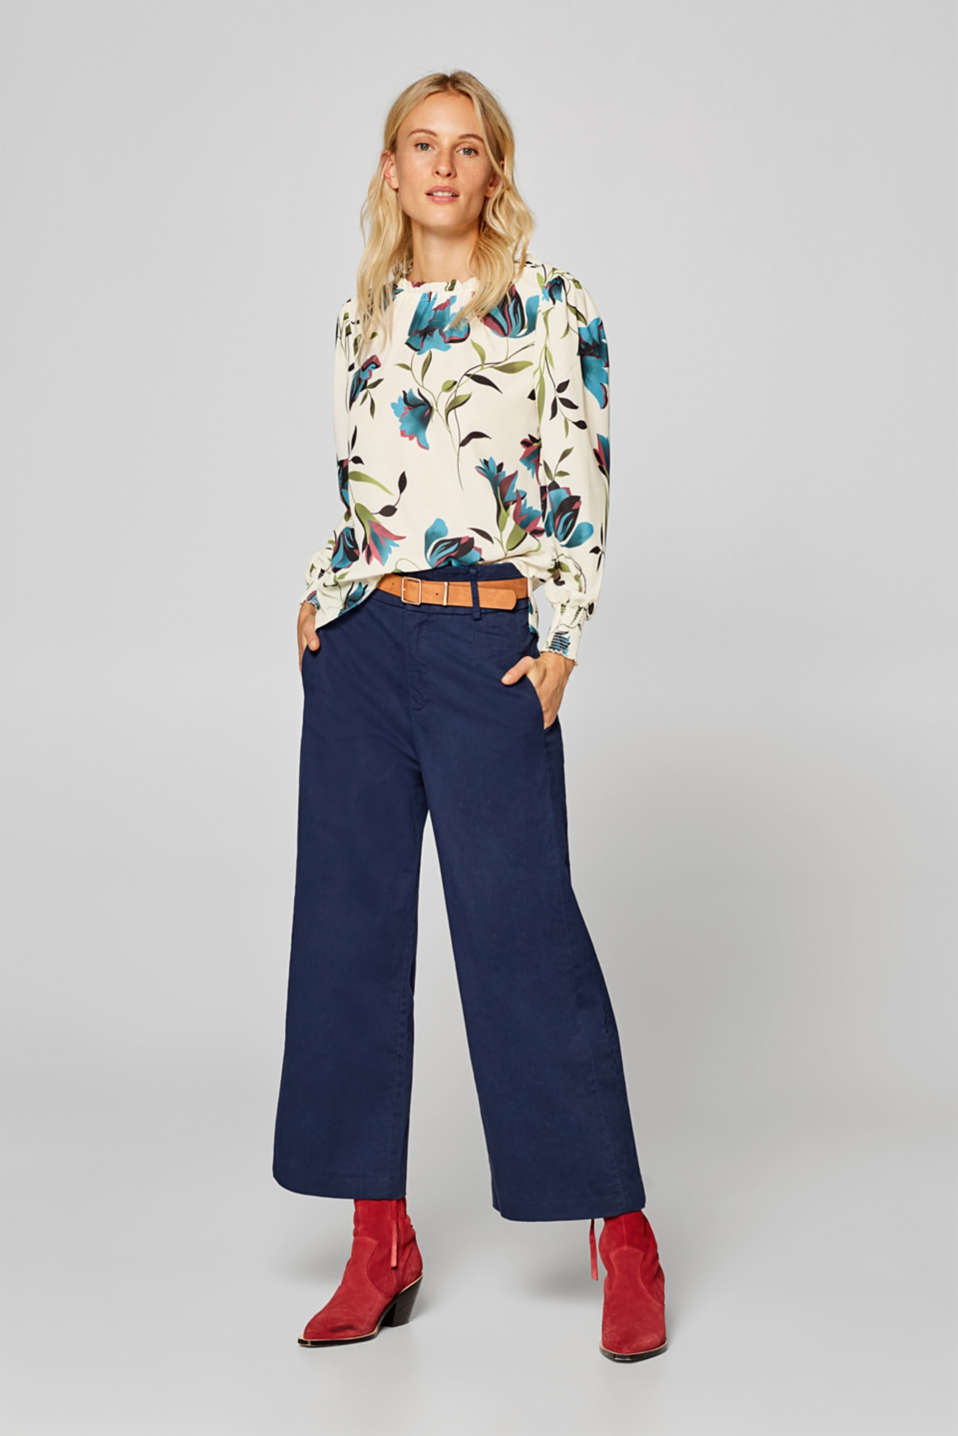 Esprit - Print blouse with balloon sleeves